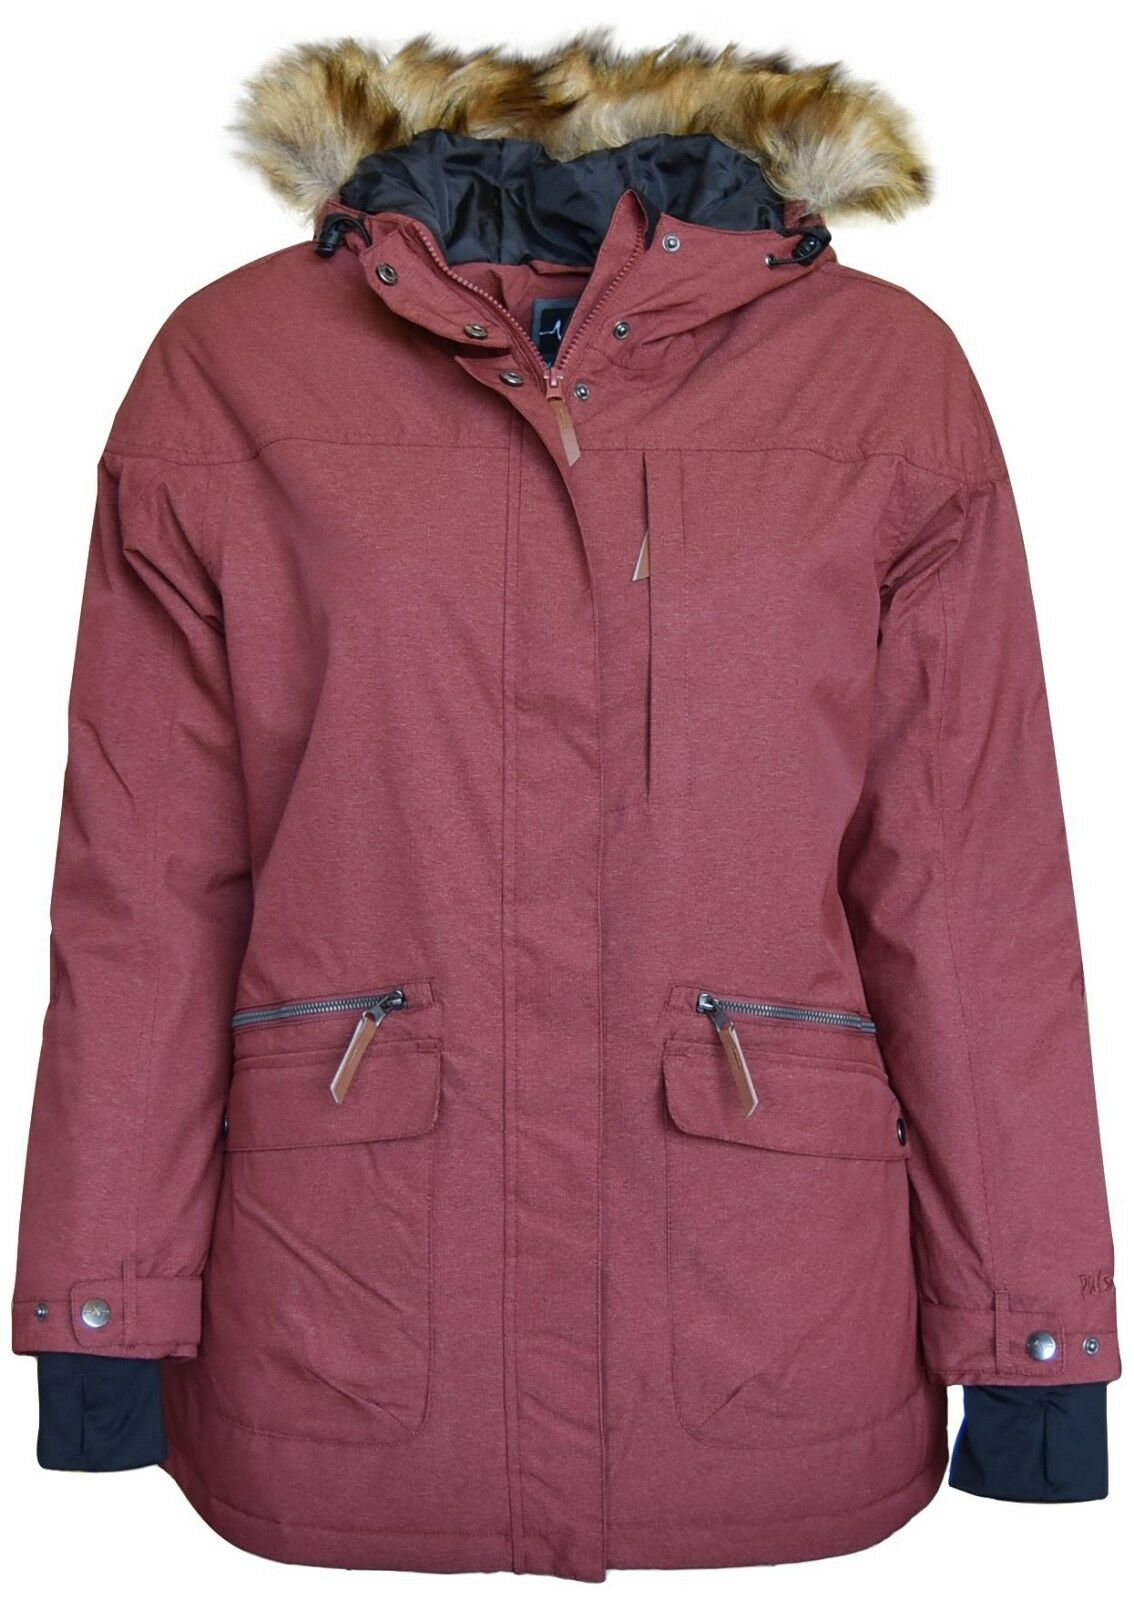 New Pulse Women's Plus Size 1X 2X 3X Insulated Parka 3 4 Societe Coat Wine